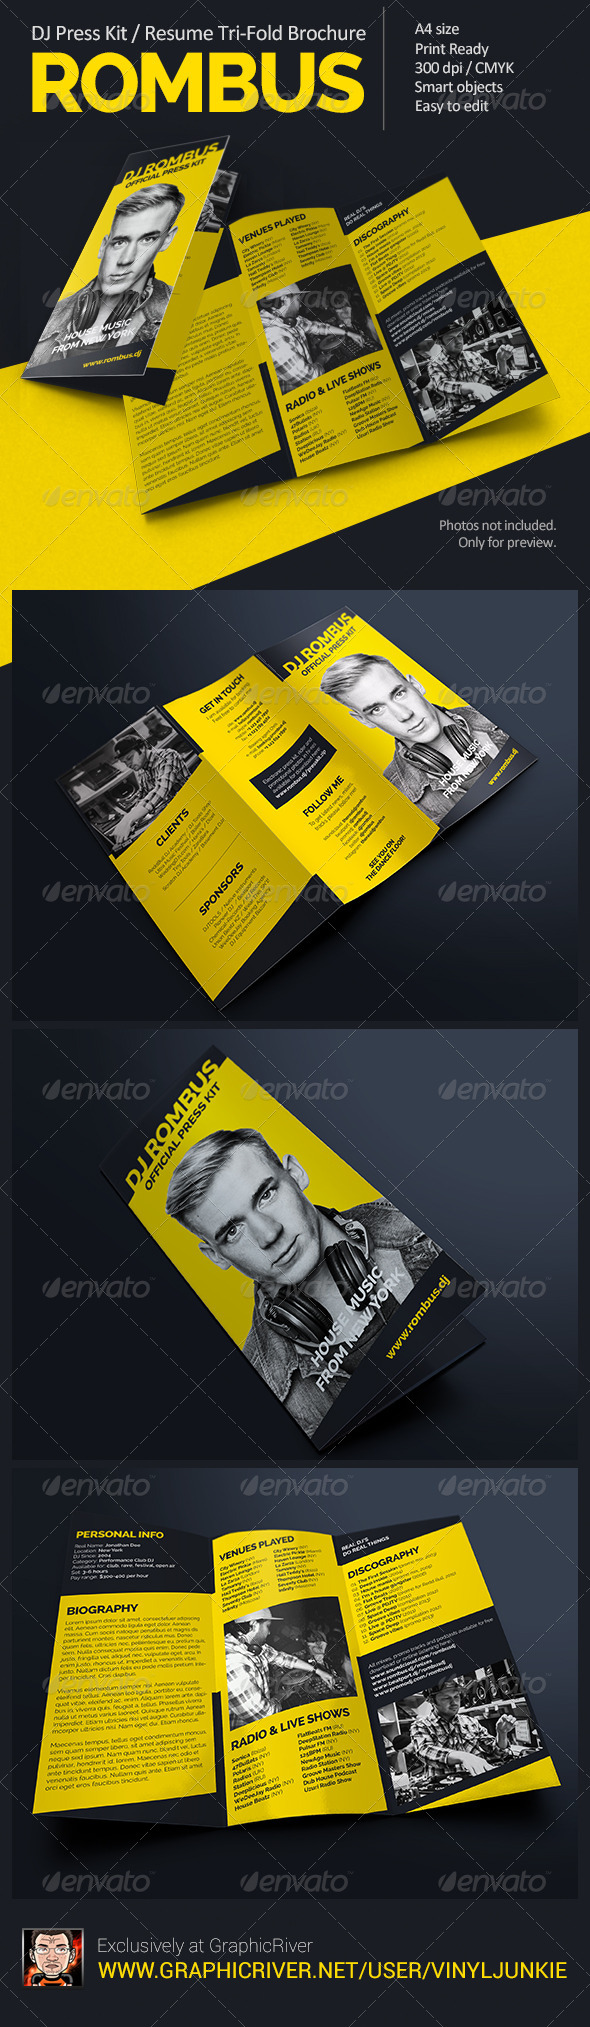 Rombus - DJ Press Kit Tri-Fold Brochure - Portfolio Brochures